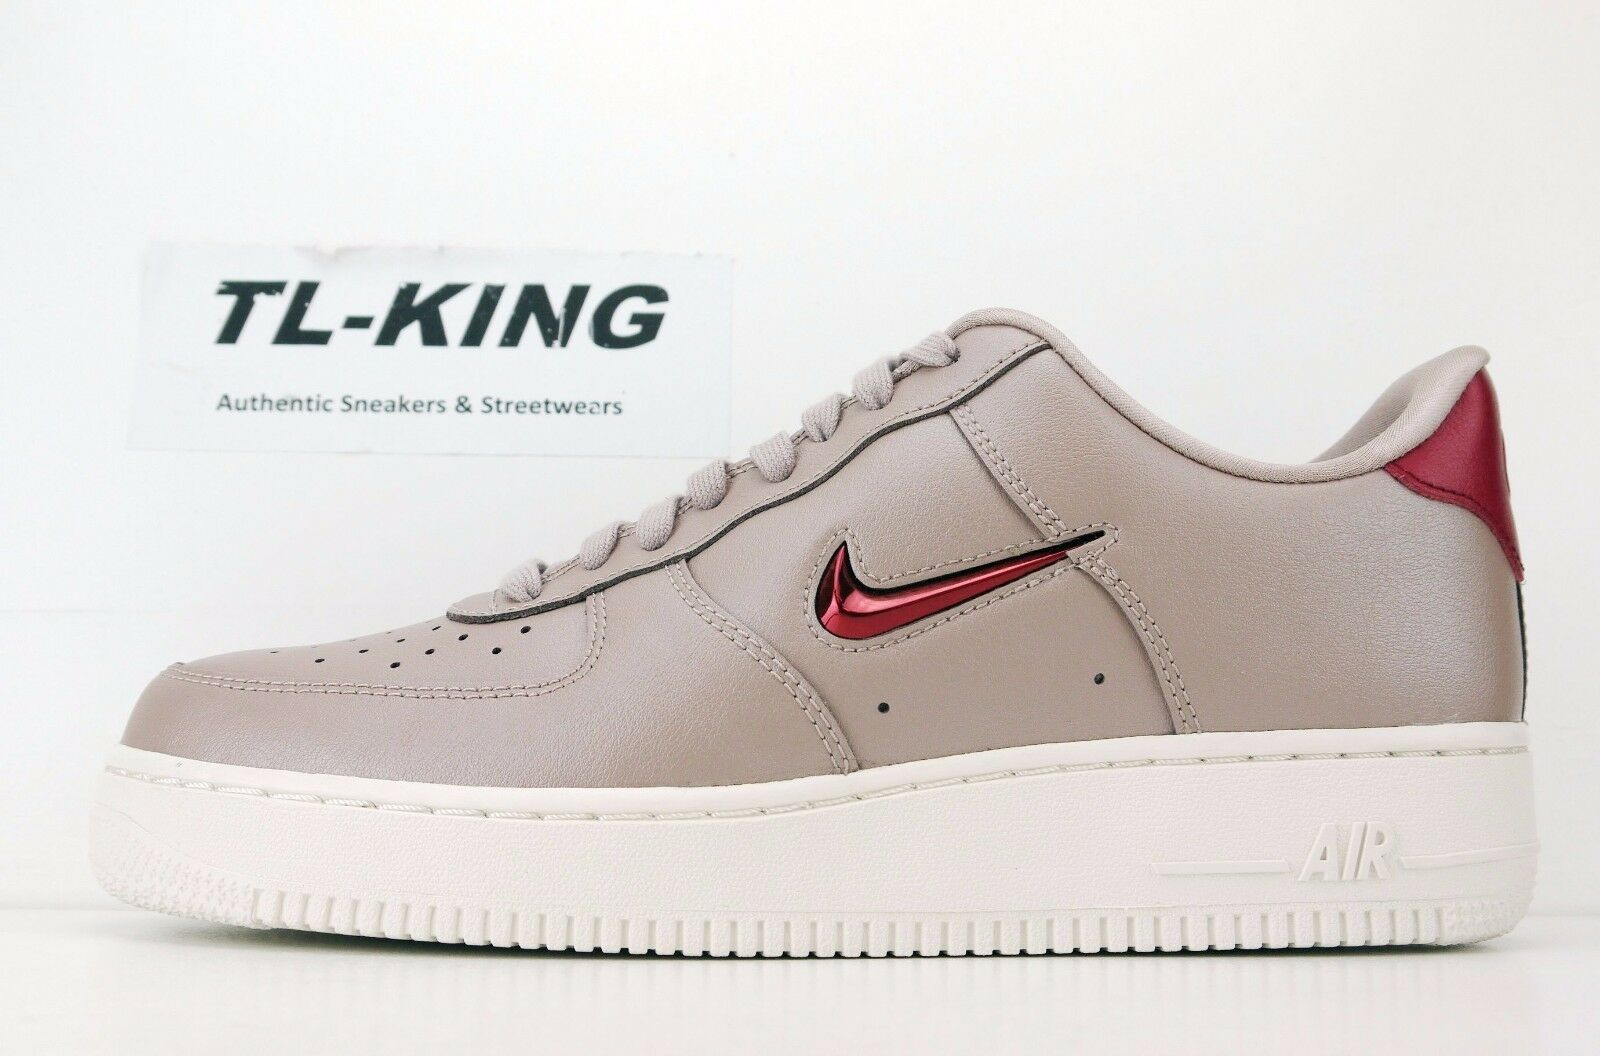 Nike Air Force 1 Low '07 Leather Leather Diffused Taupe Red Crush AJ9507 200 GC